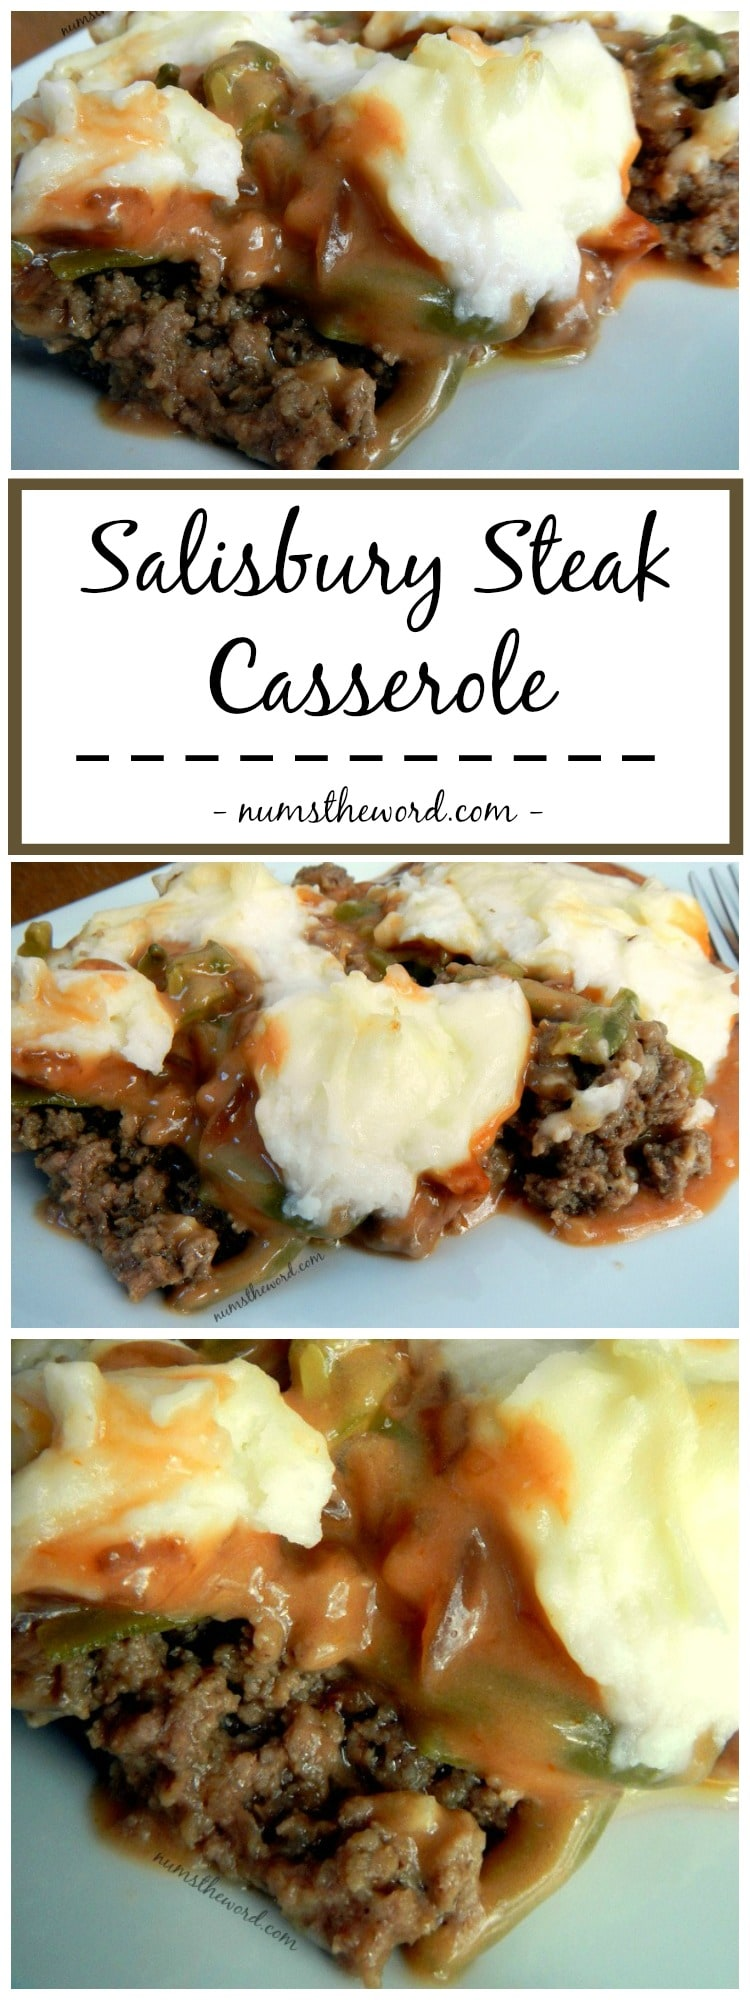 Salisbury Steak Casserole and Green Bean Casserole Collage for pinterst